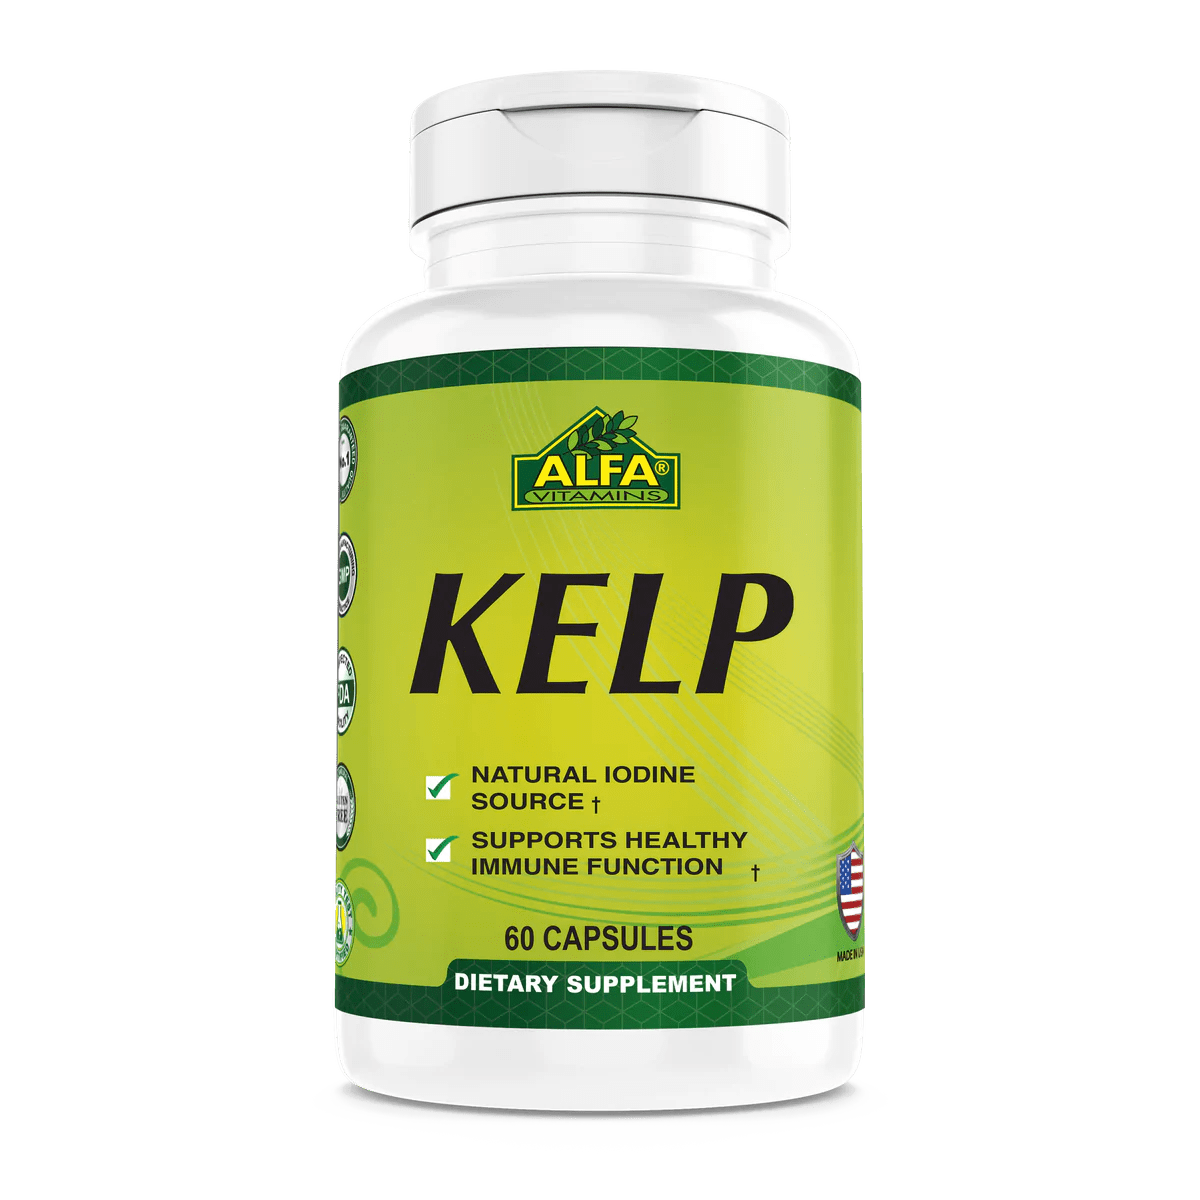 Kelp Supplement / Iodine Source / Weight Loss Support ...